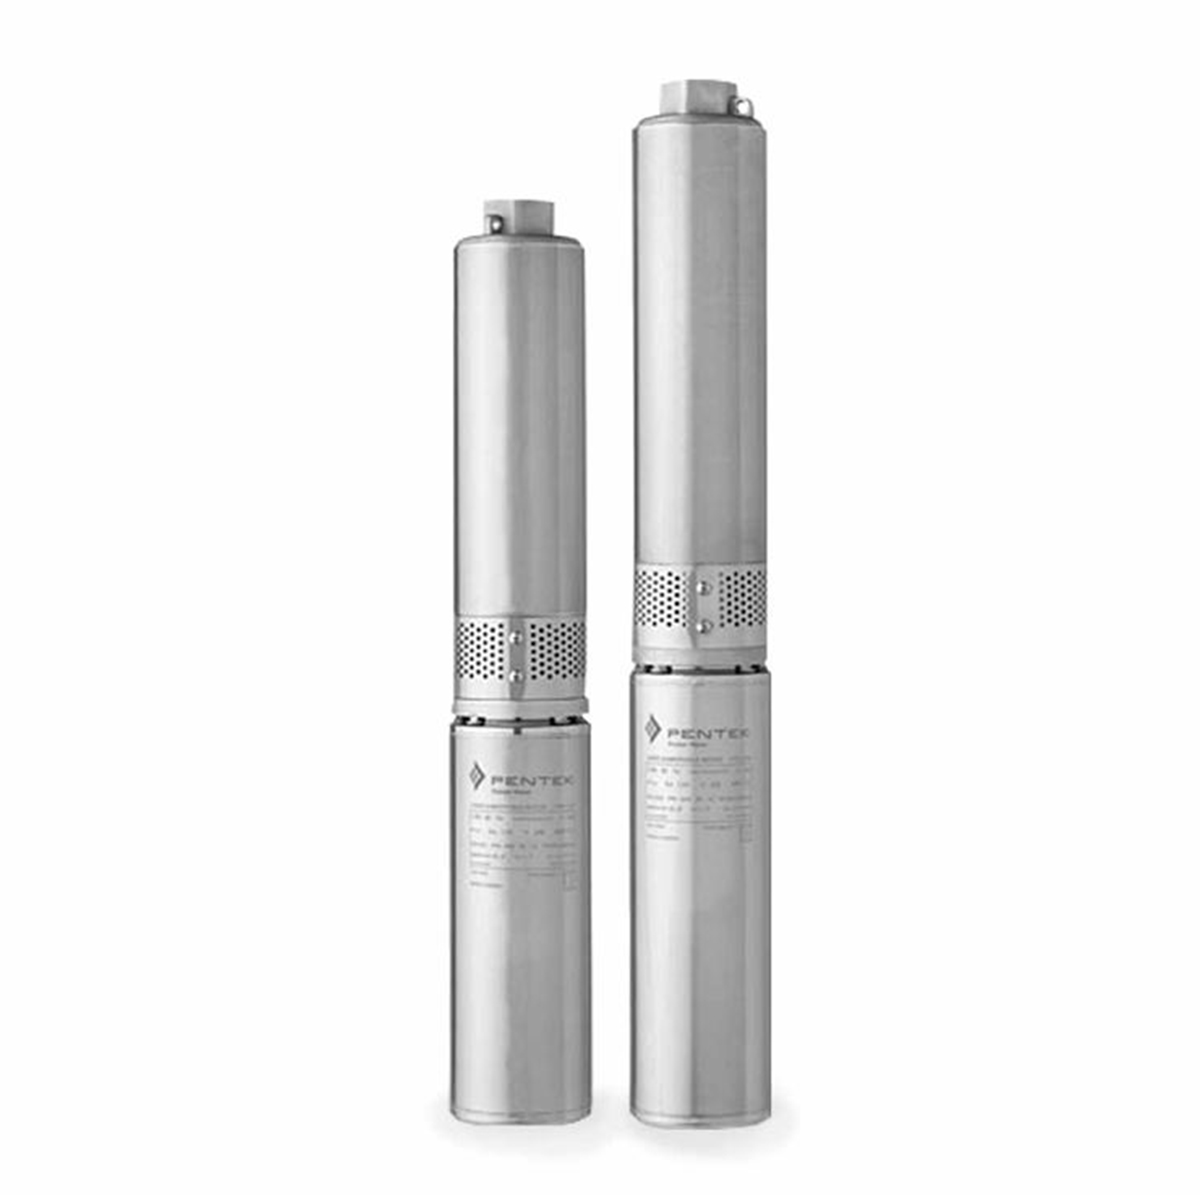 Myers 2ST51-8PLUS-P4 Submersible Stainless Steel Pump 2-Wire 1PH